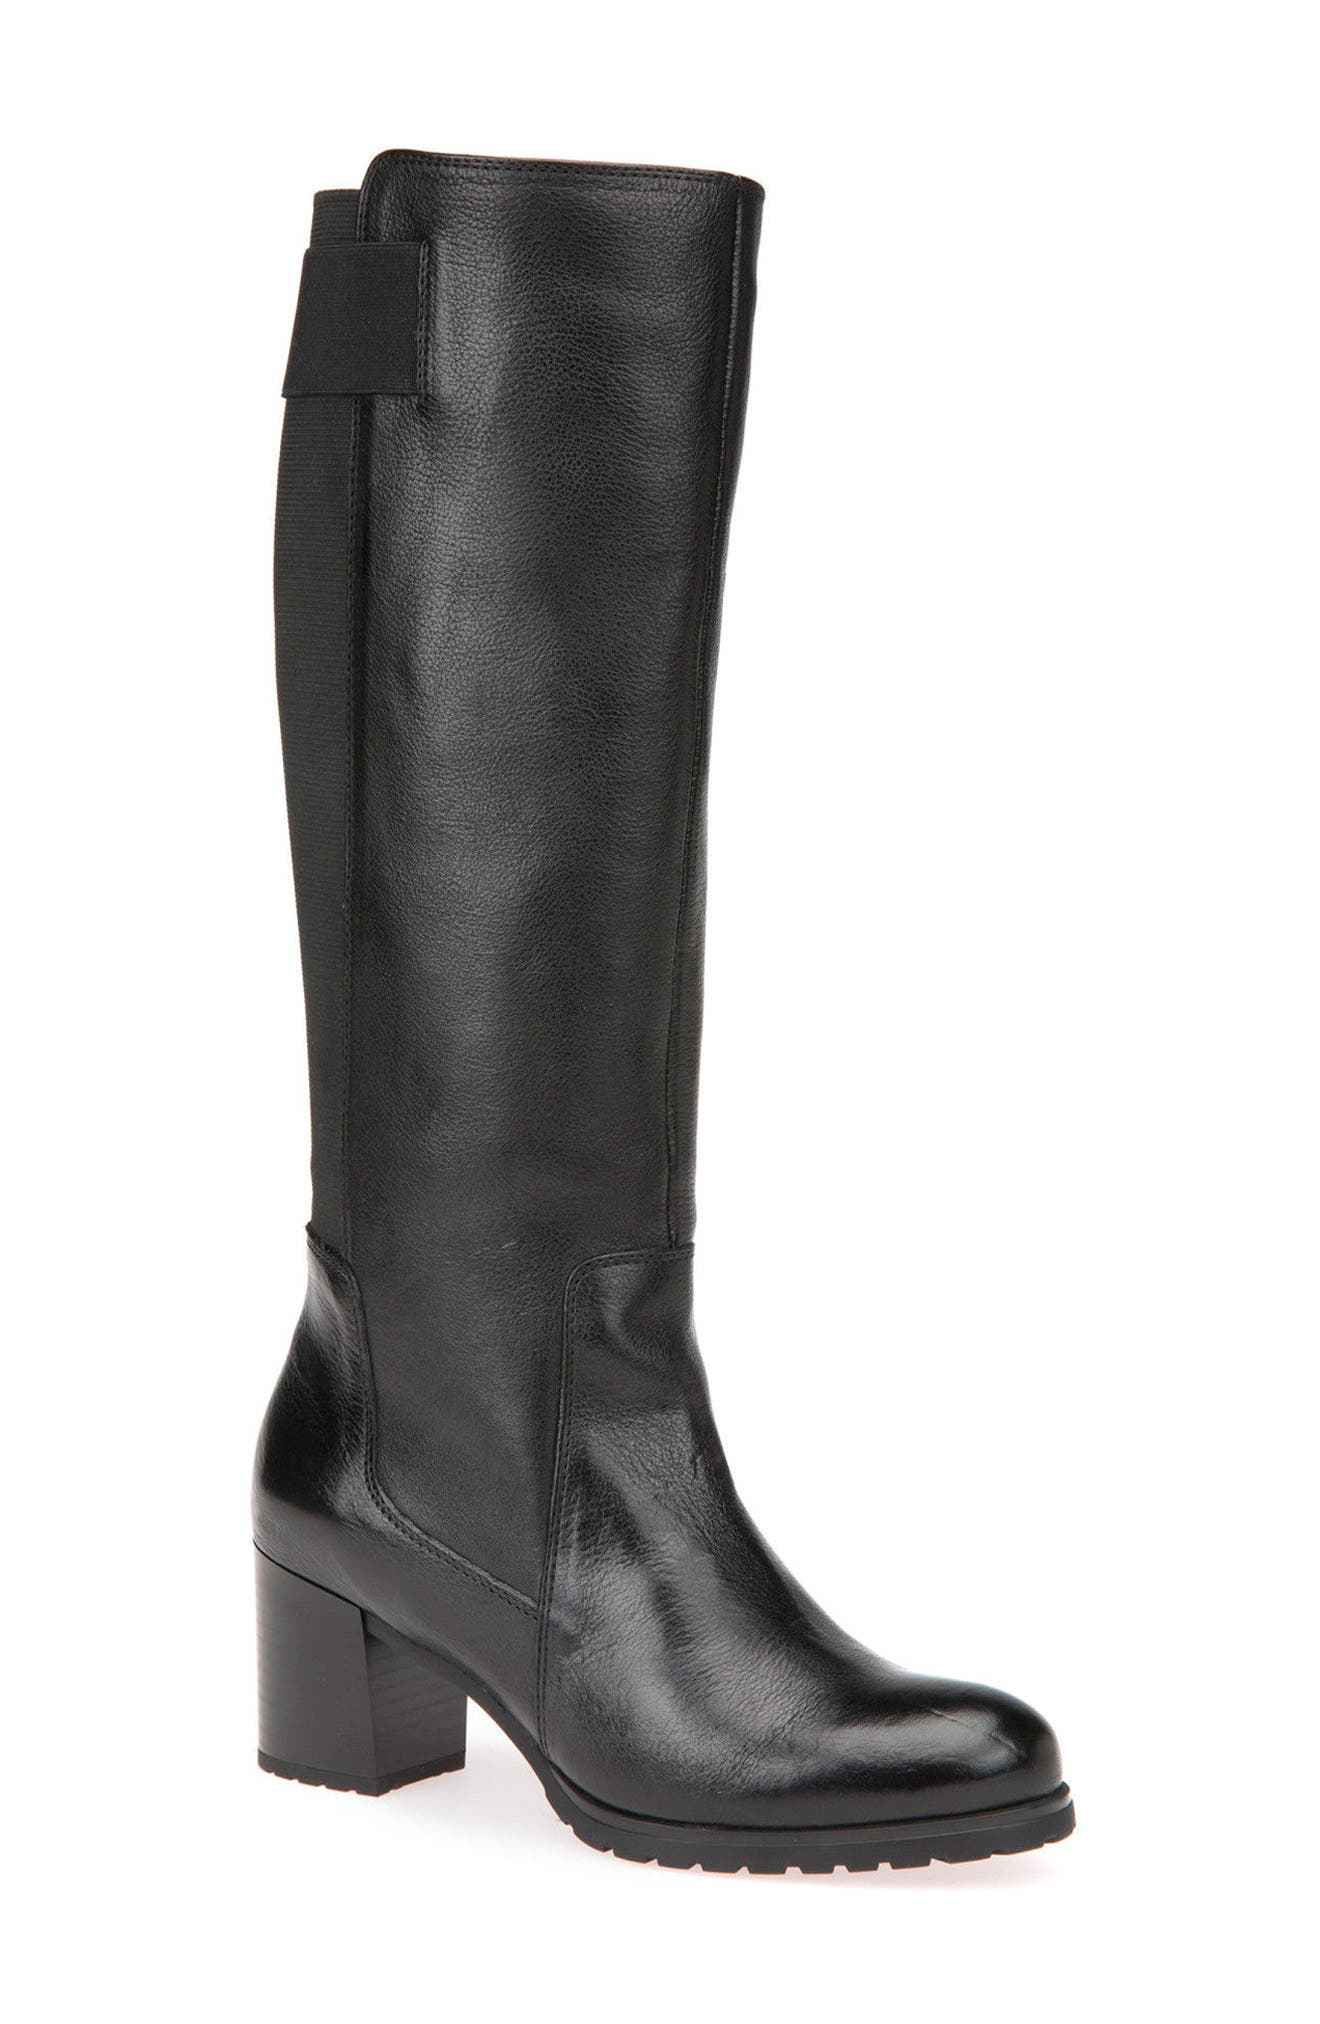 Alternate Image 1 Selected - Geox Newlise Boot (Women)